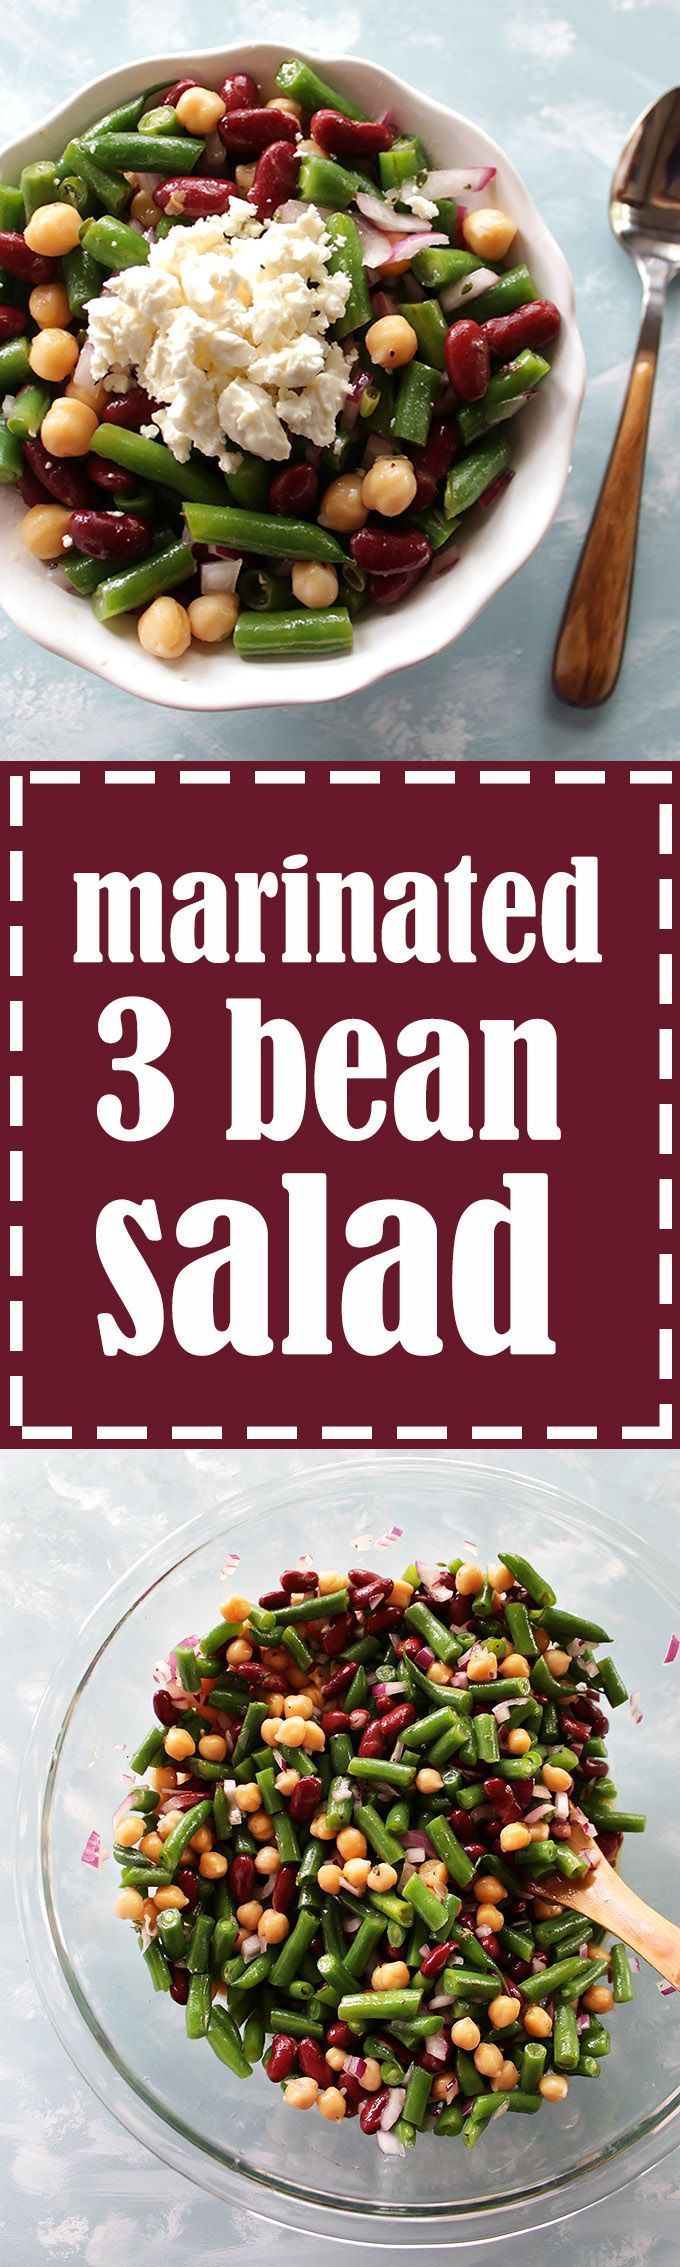 Marinated 3 Bean Salad - This salad is perfect for school/work lunches or prepping meals. It makes a huge batch and lasts for up to one week! Crunchy green beans, creamy red kidney beans, and chickpeas all marinate in a tangy red wine vinaigrette. This re